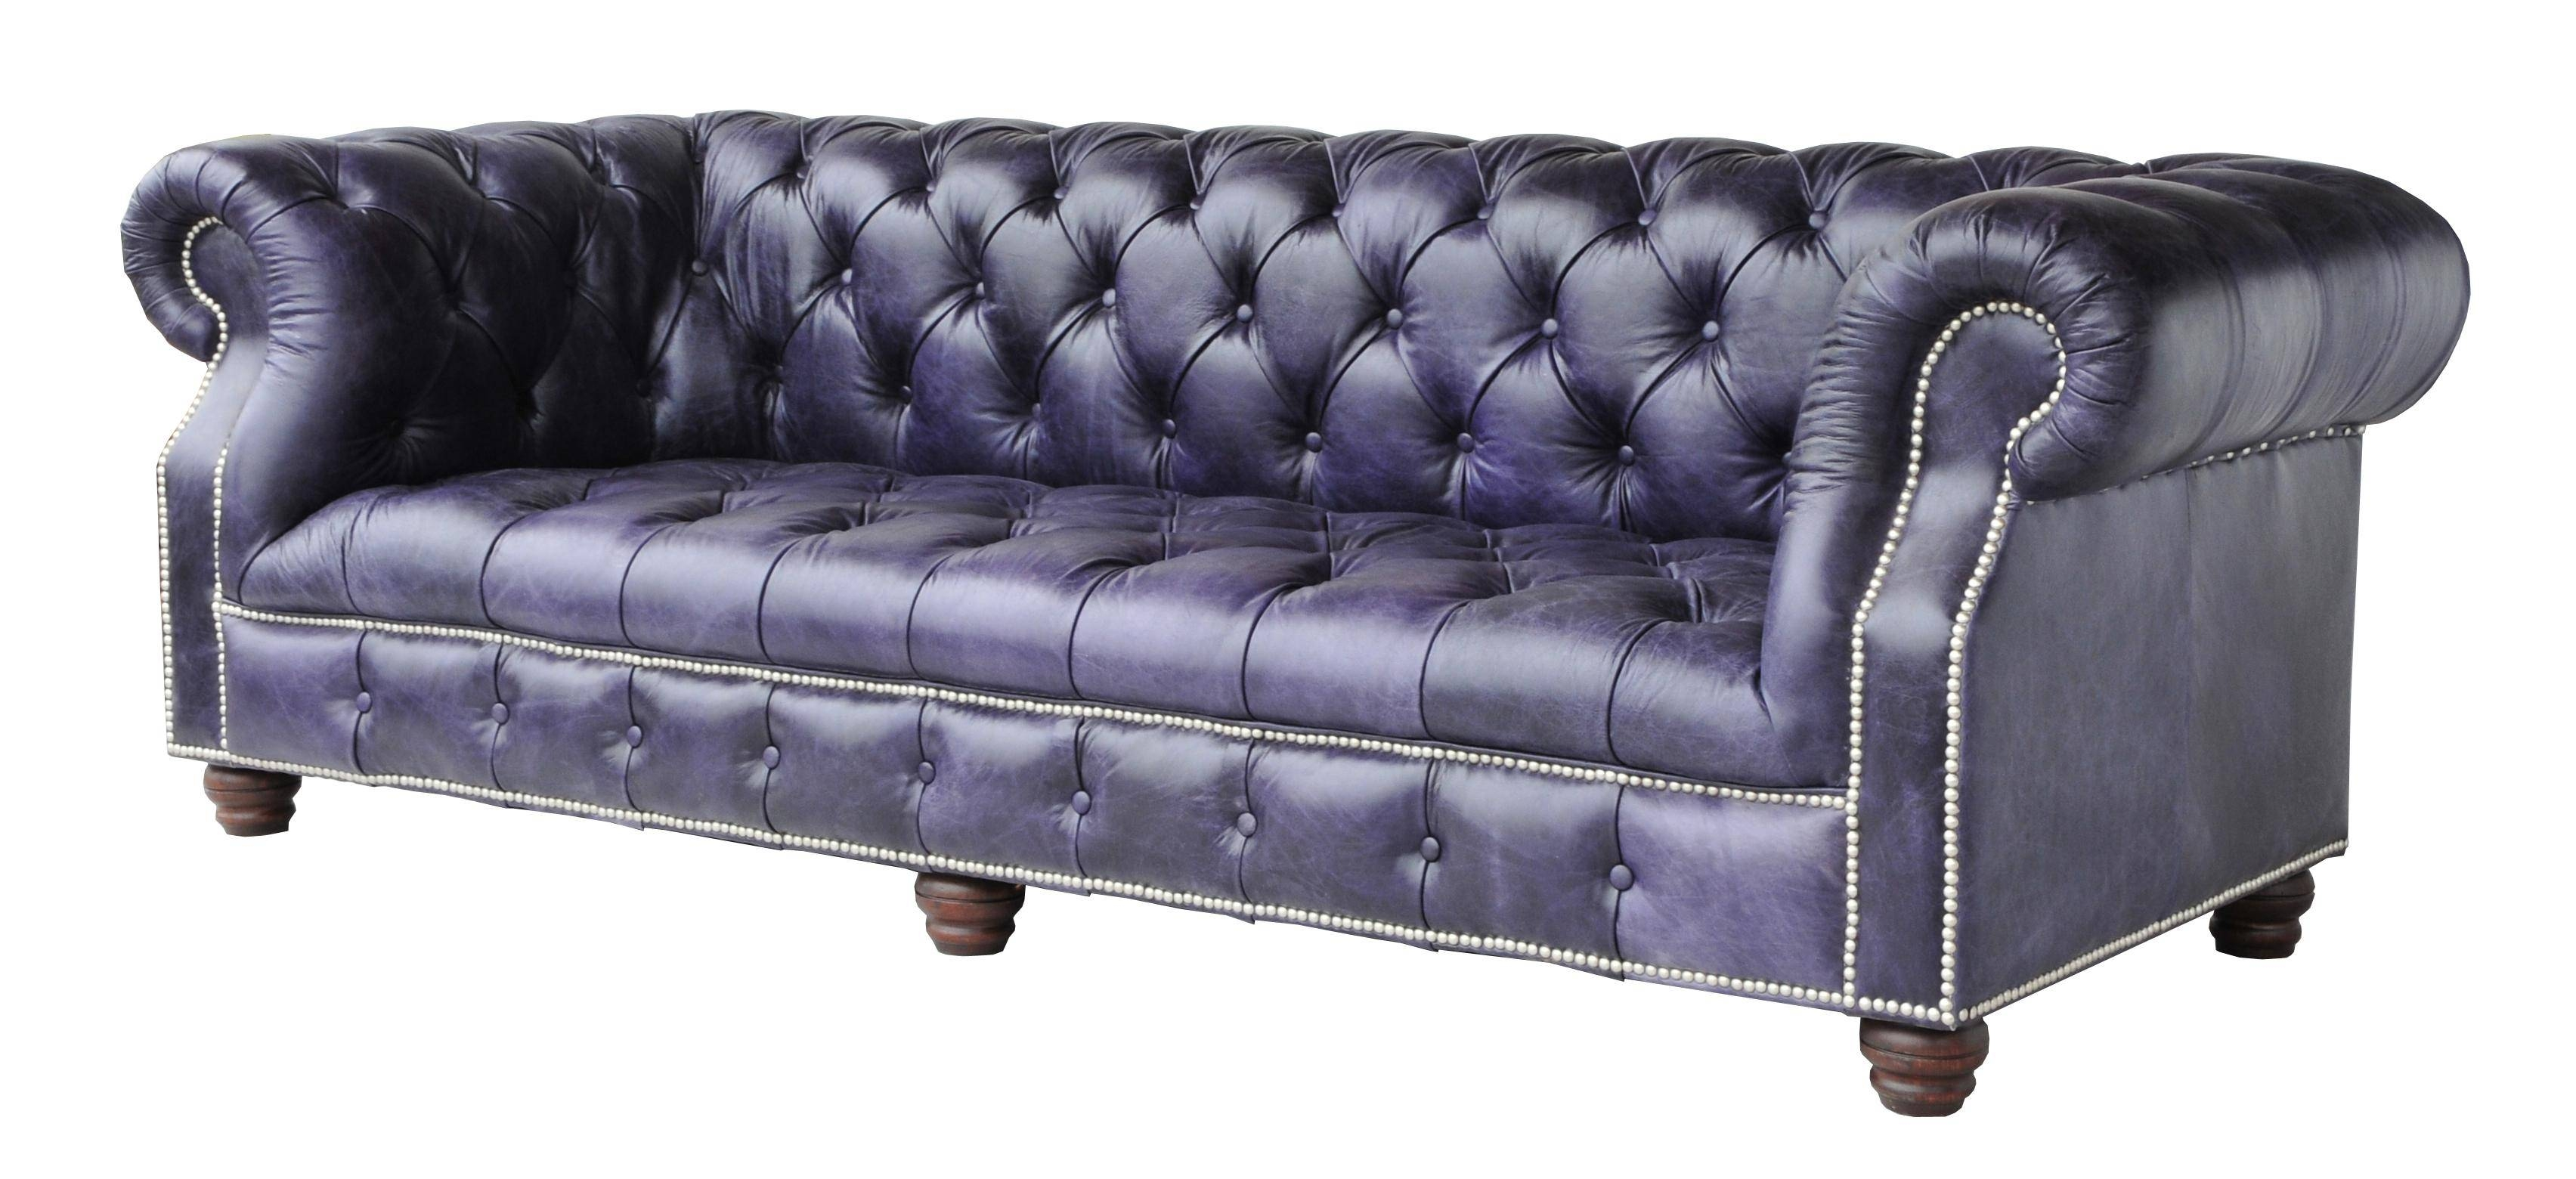 Oxford Senior Common Room Sofa : University Of Oxford Shop with Oxford Sofas (Image 22 of 30)